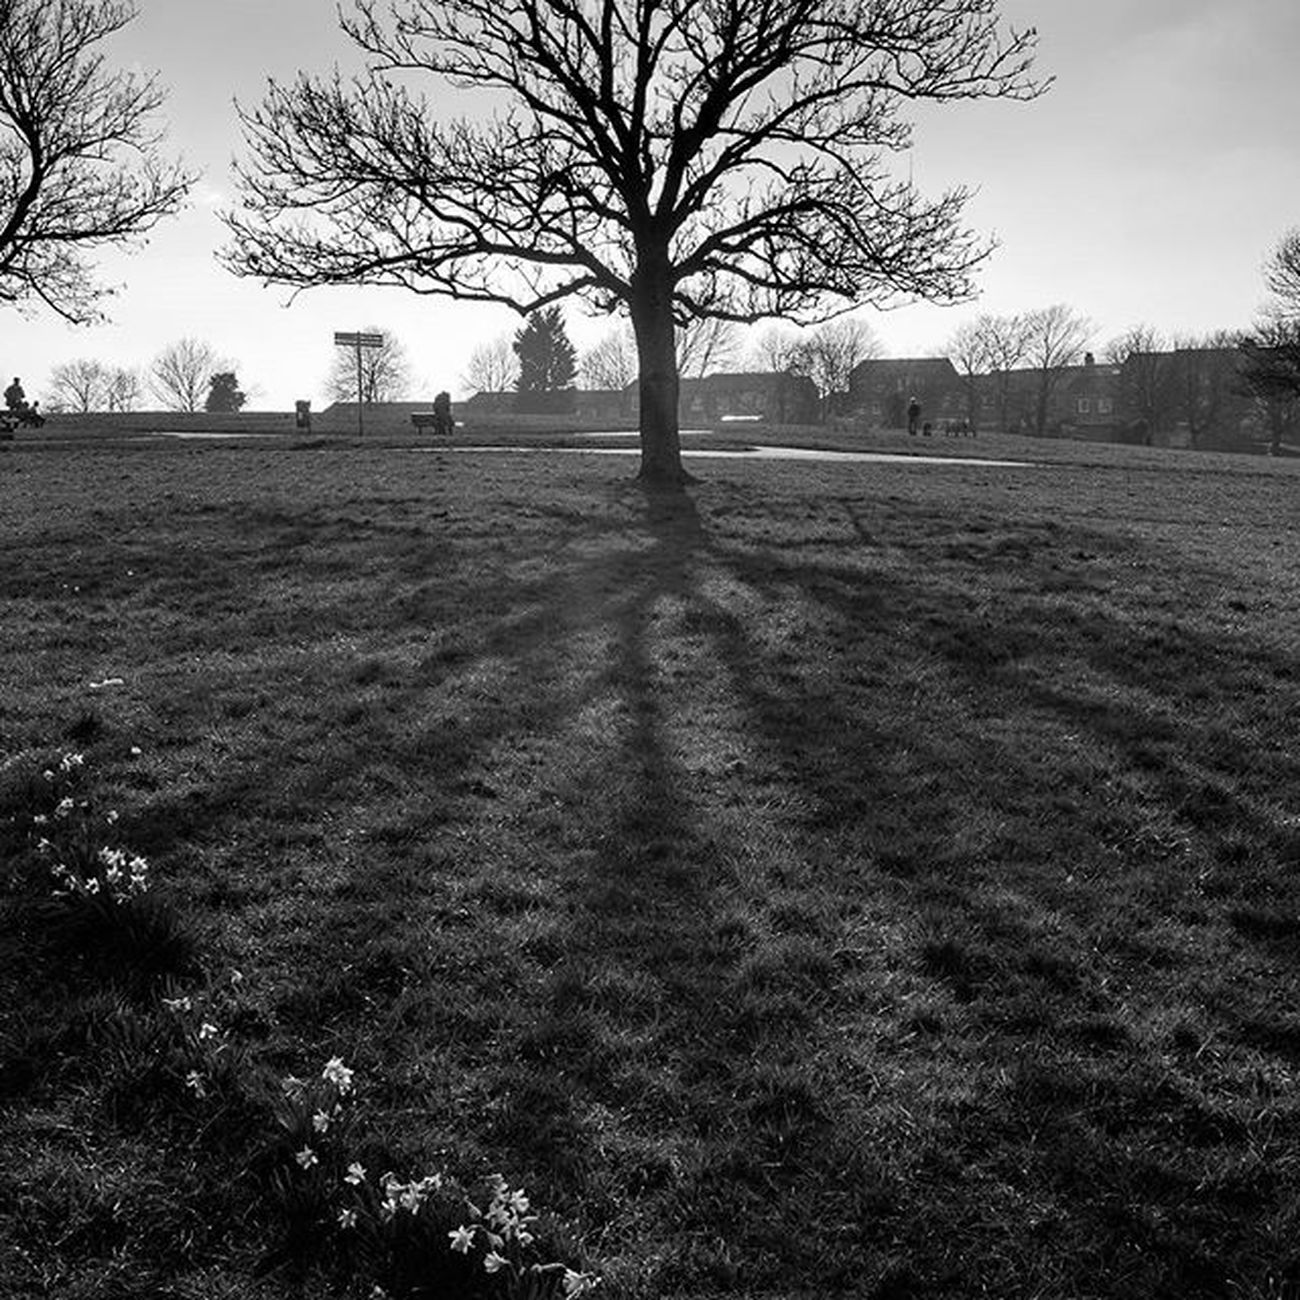 Tree Shadow Daffodils Park Blackandwhite Nature London Blythehillfields Flower